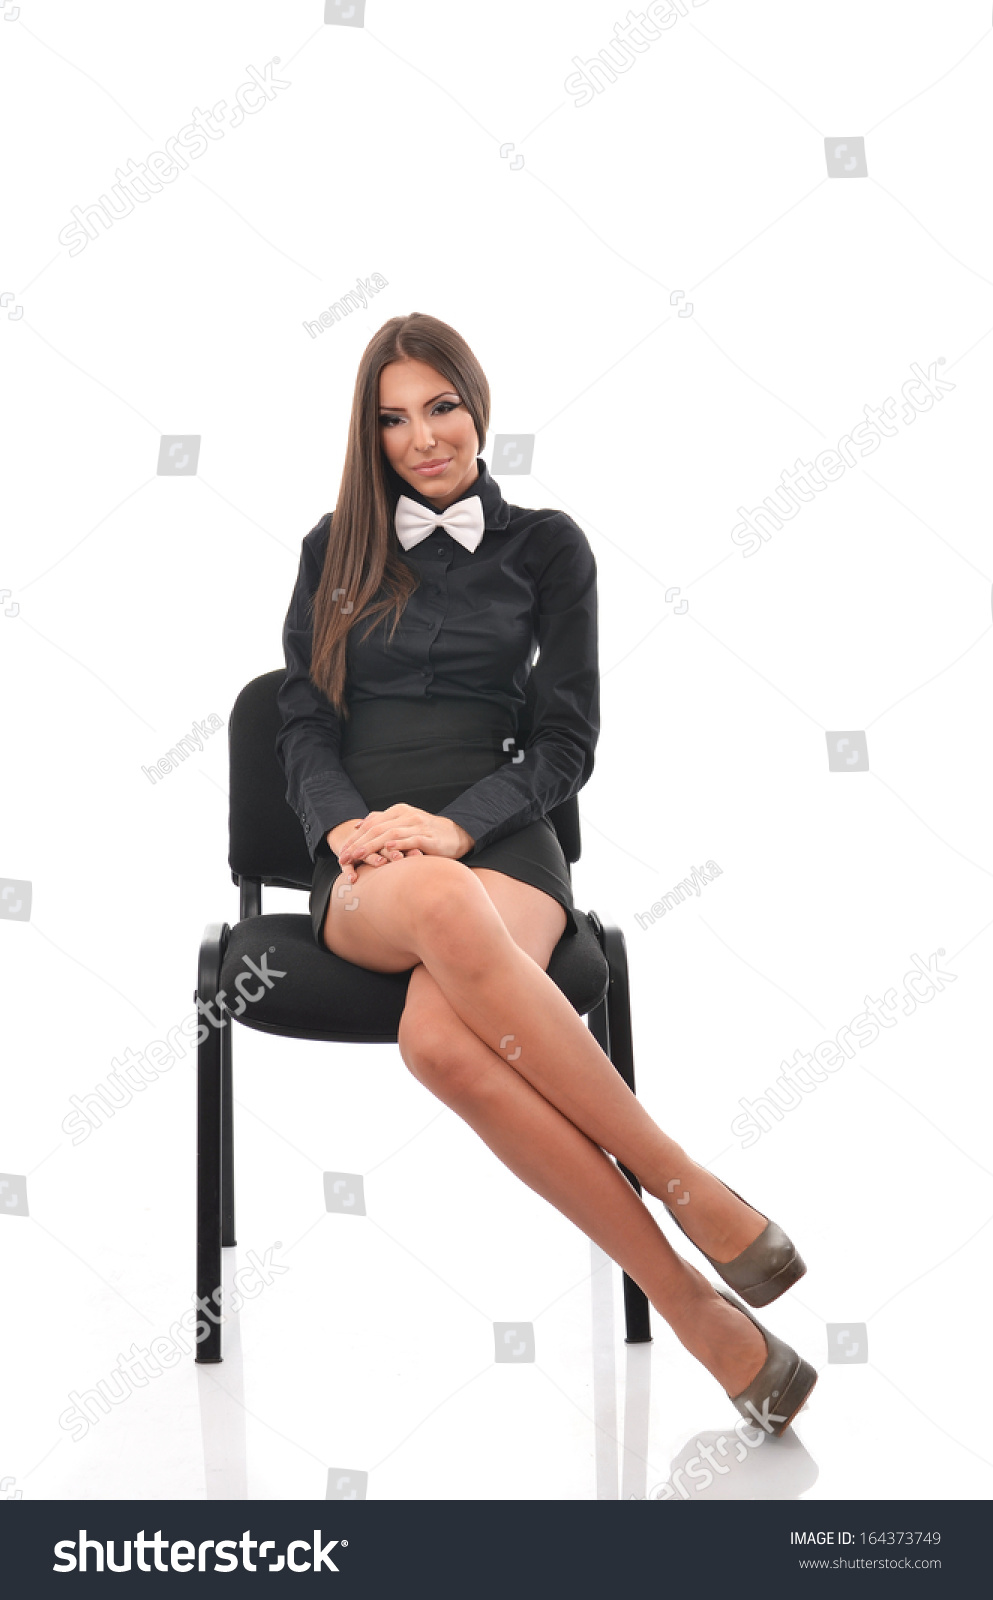 Young Beautiful Woman Siting On A Chair With Her Legs